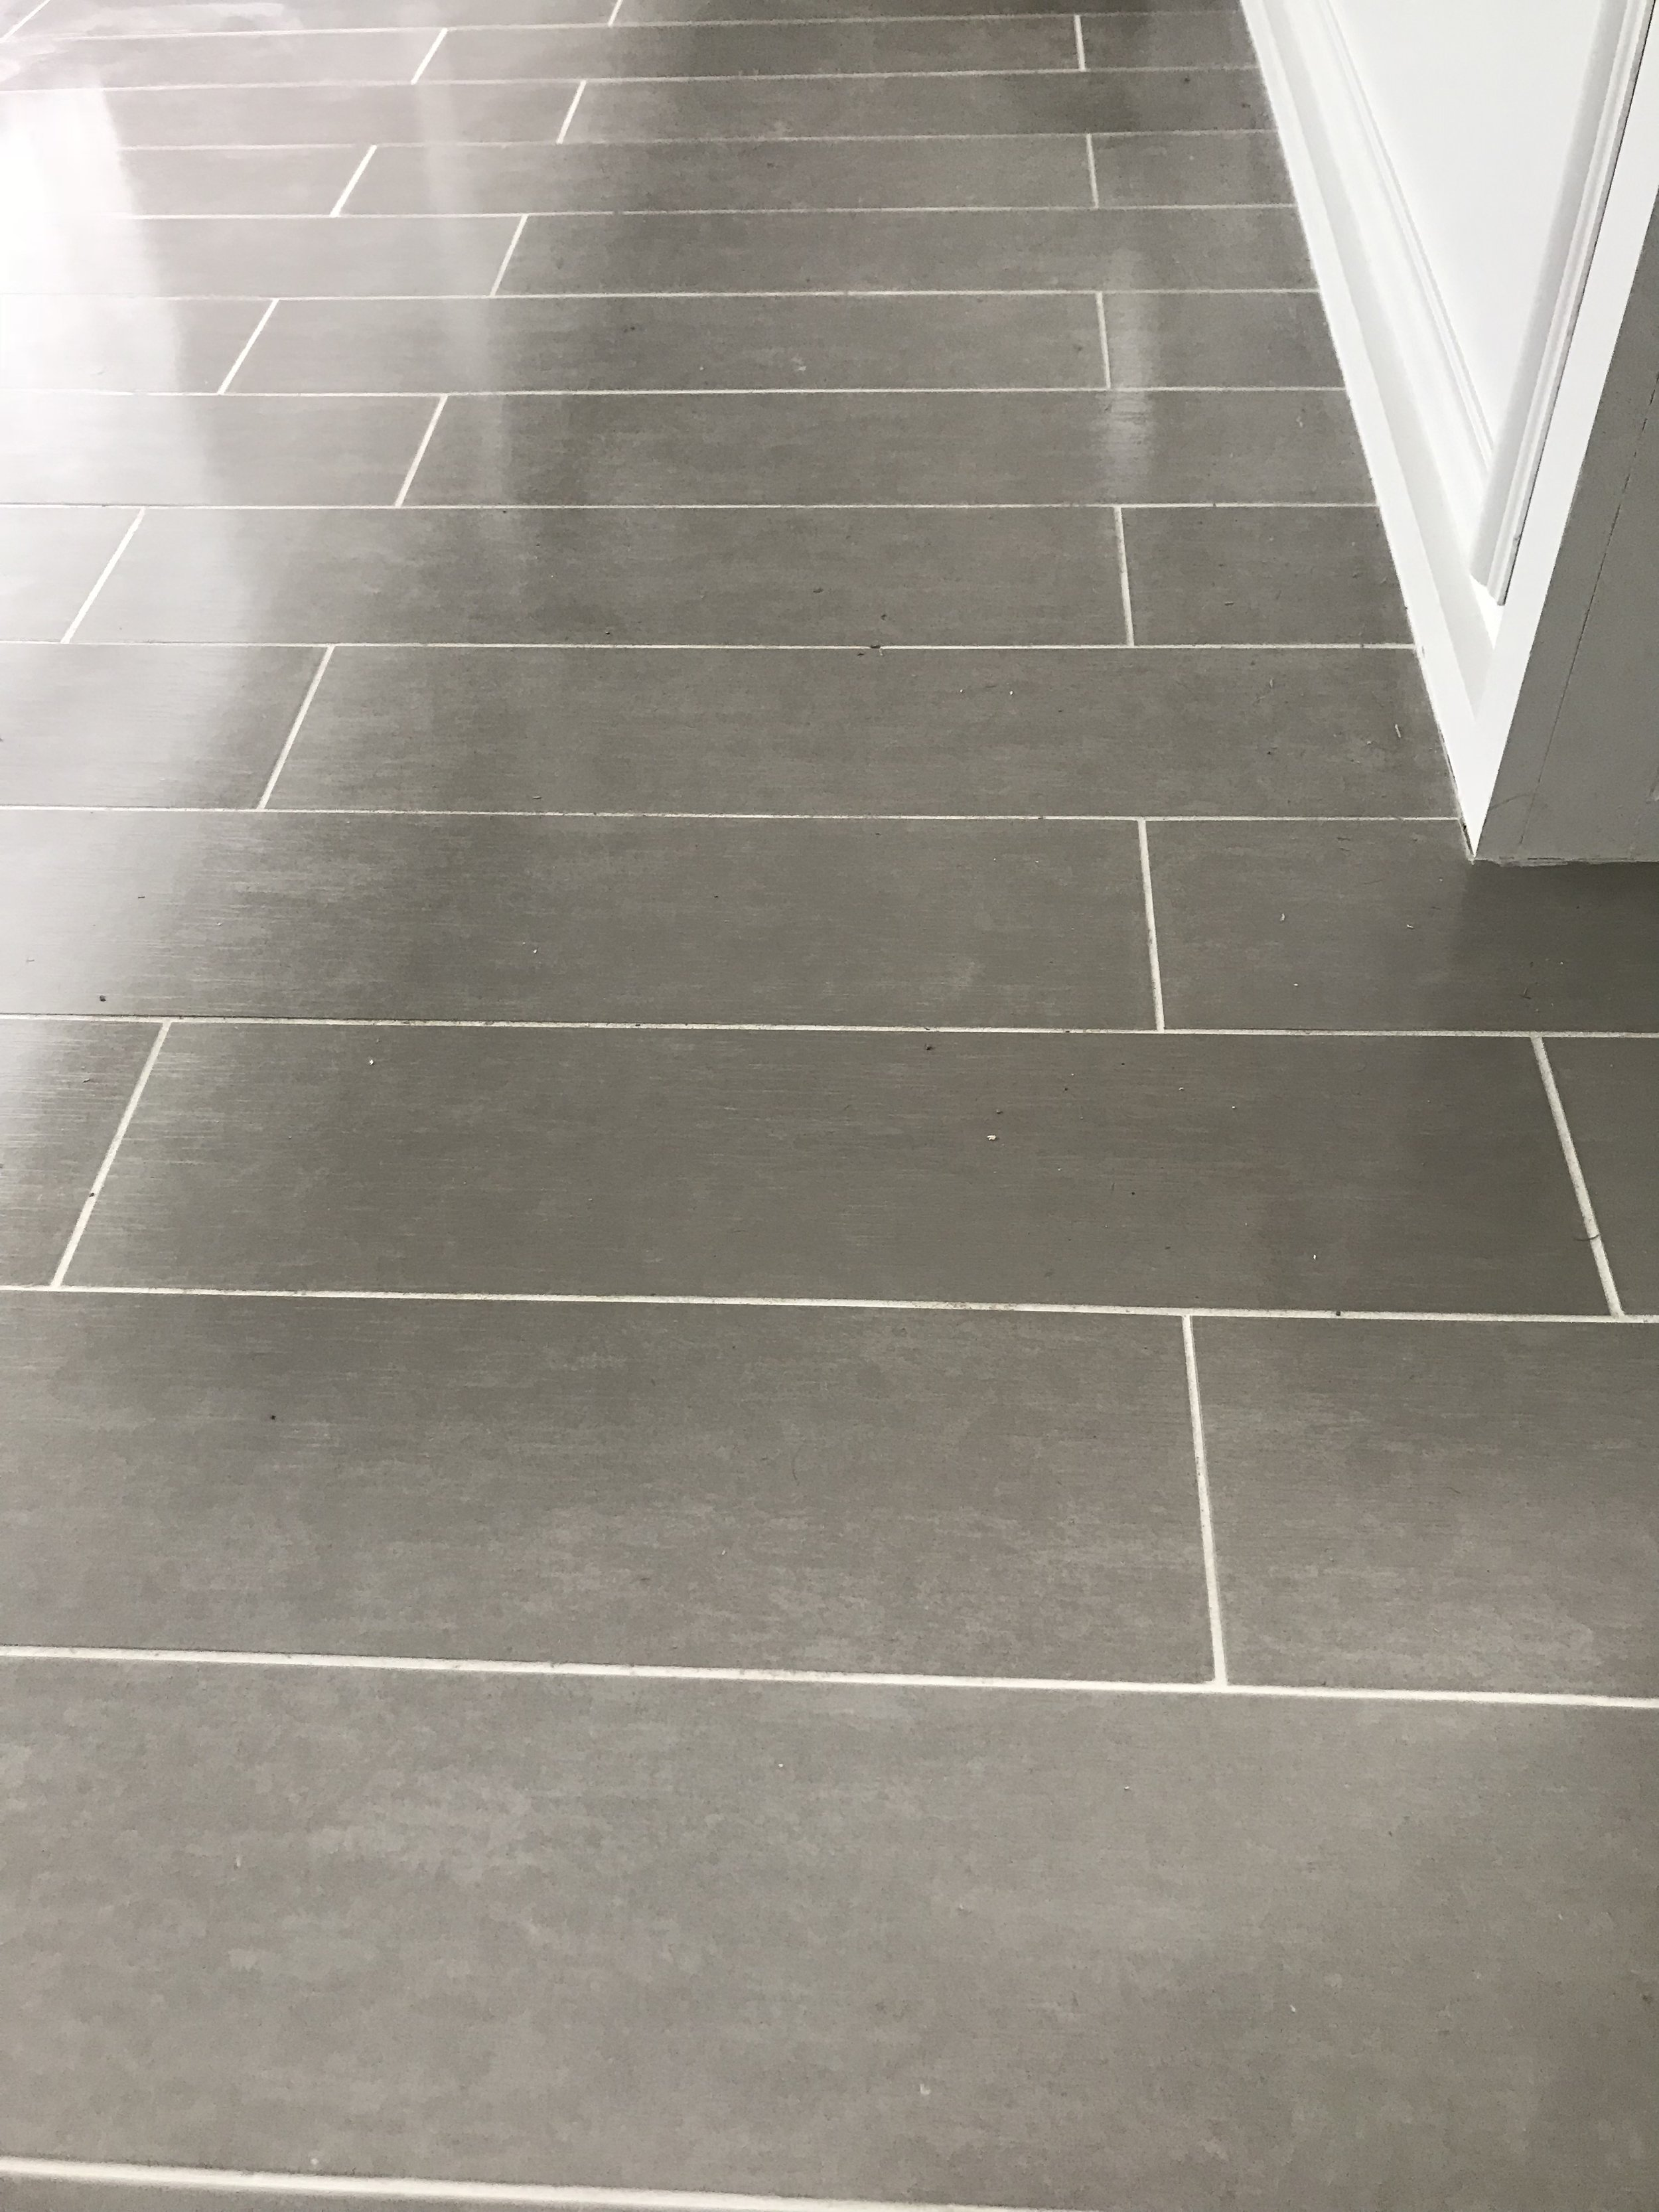 Flooring - Make sure your floors are installed properly. Flat and level will keep you from having any trip hazards. Find out just how well modernizing your old floors will really bring your room together.